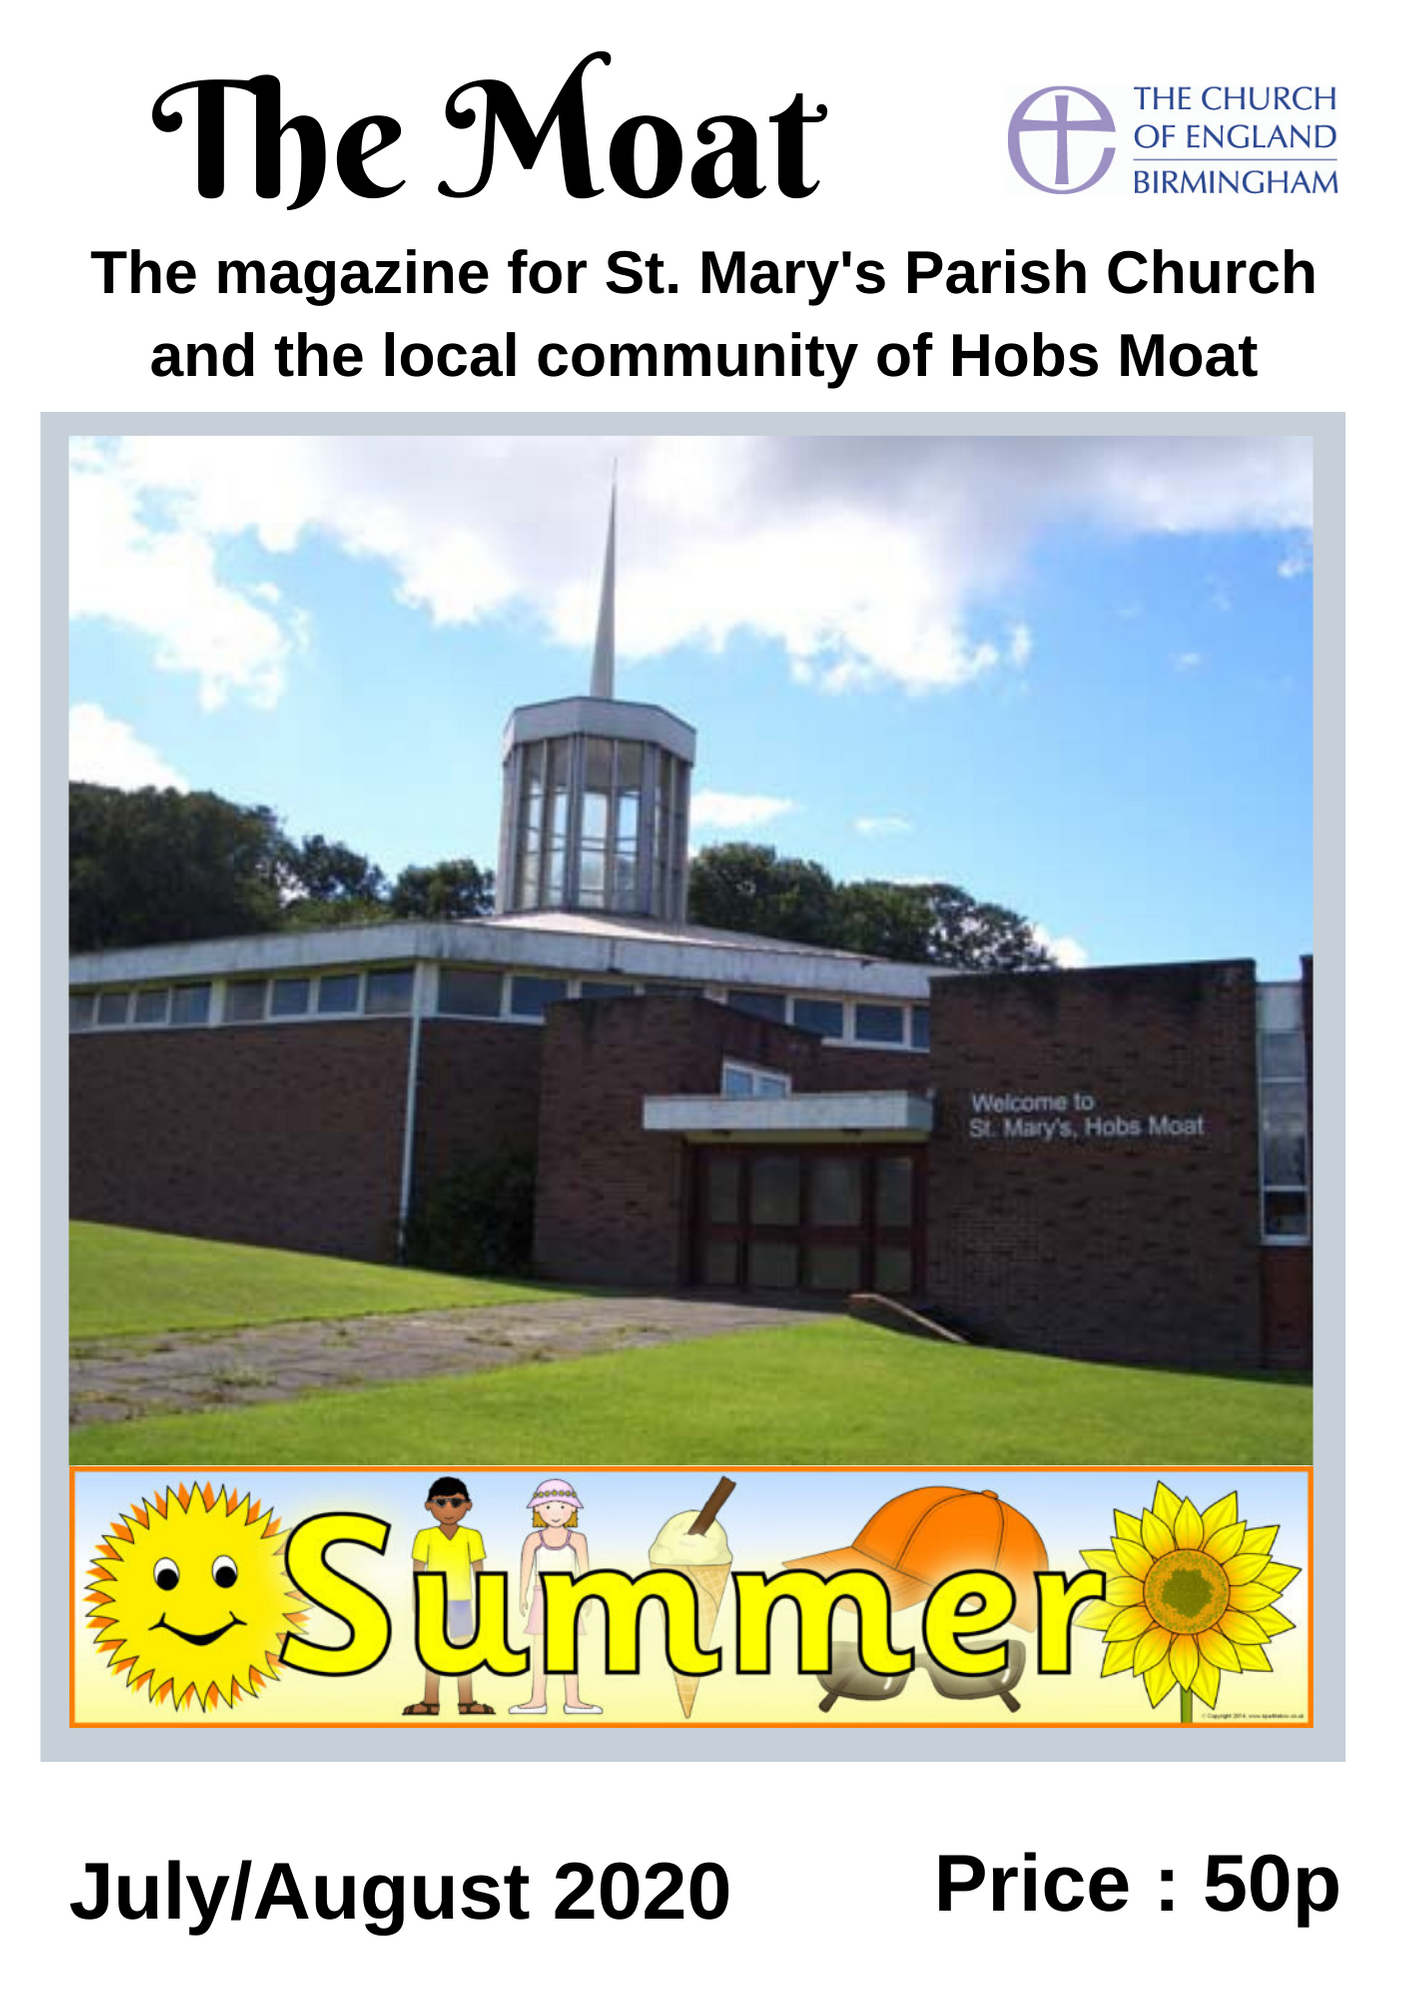 The Moat Magazine - July/August 2020